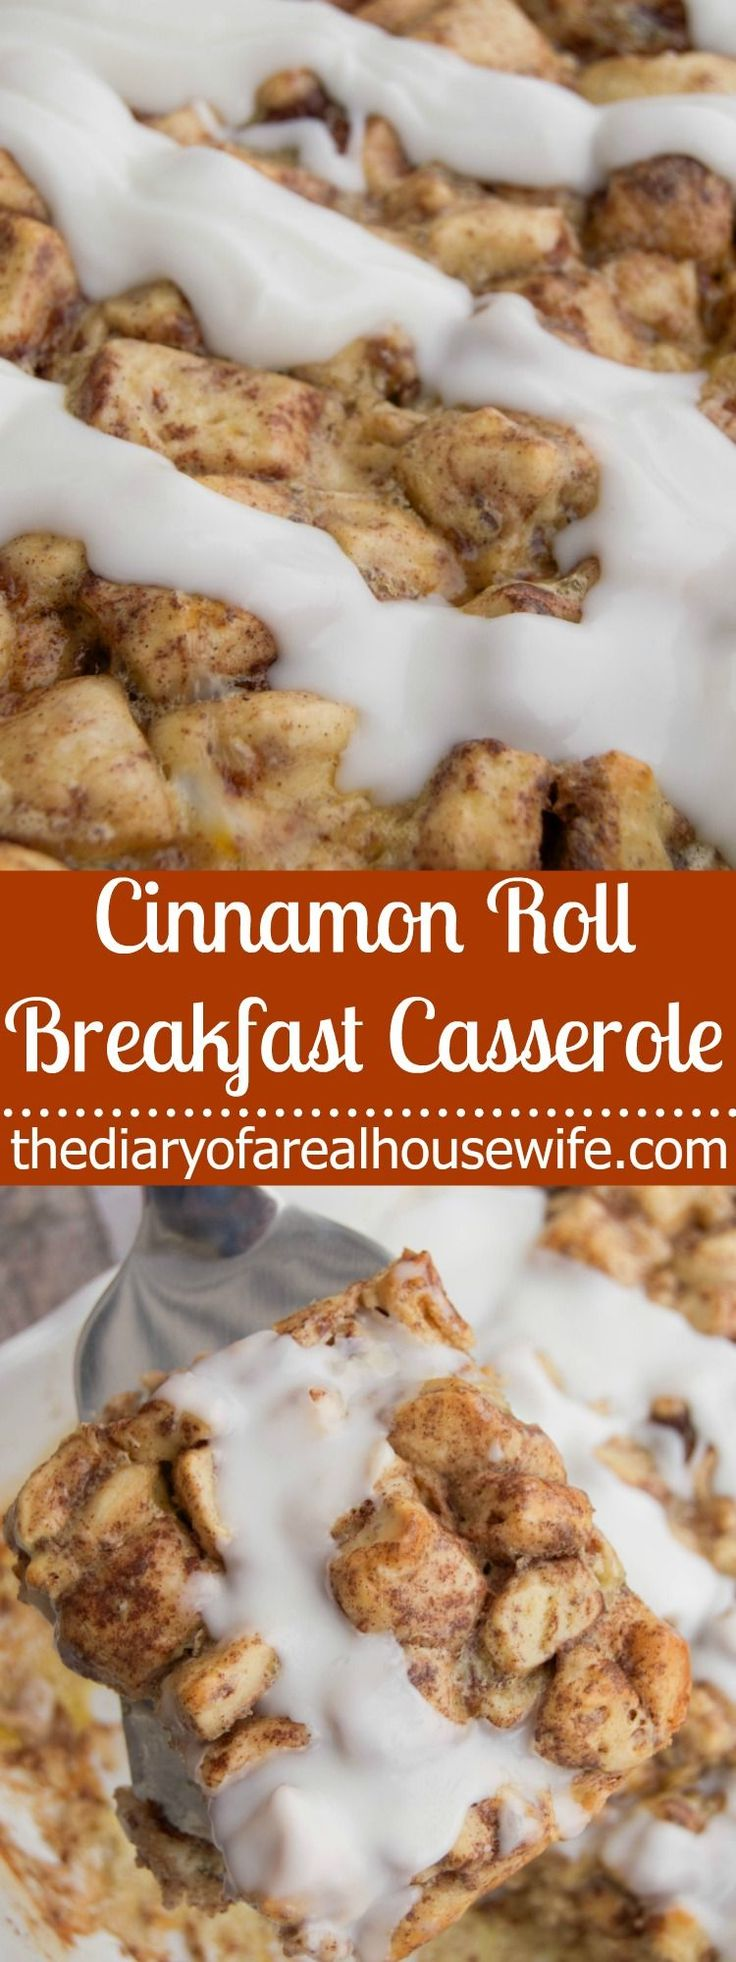 Cinnamon Roll  Breakfast Casserole. This is what I served on Christmas morning last year! SO GOOD!